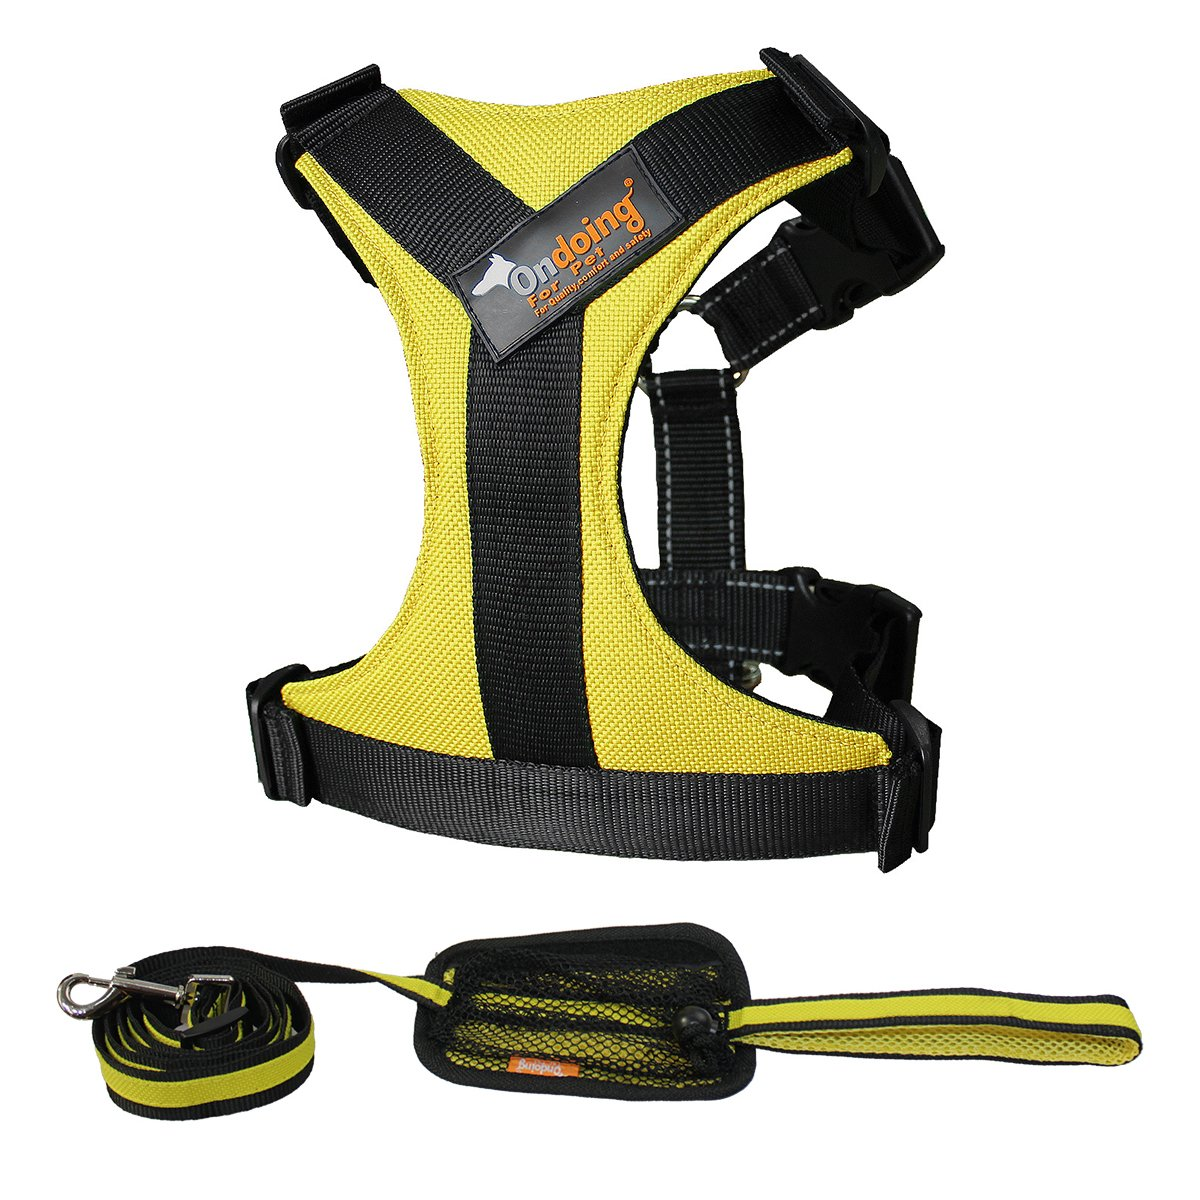 Ondoing Dog Harness No Pull Pet Vest with Handle Adjustable Reflective Easy Control for Small Medium Large Dog, 2 Pieces Yellow, Small